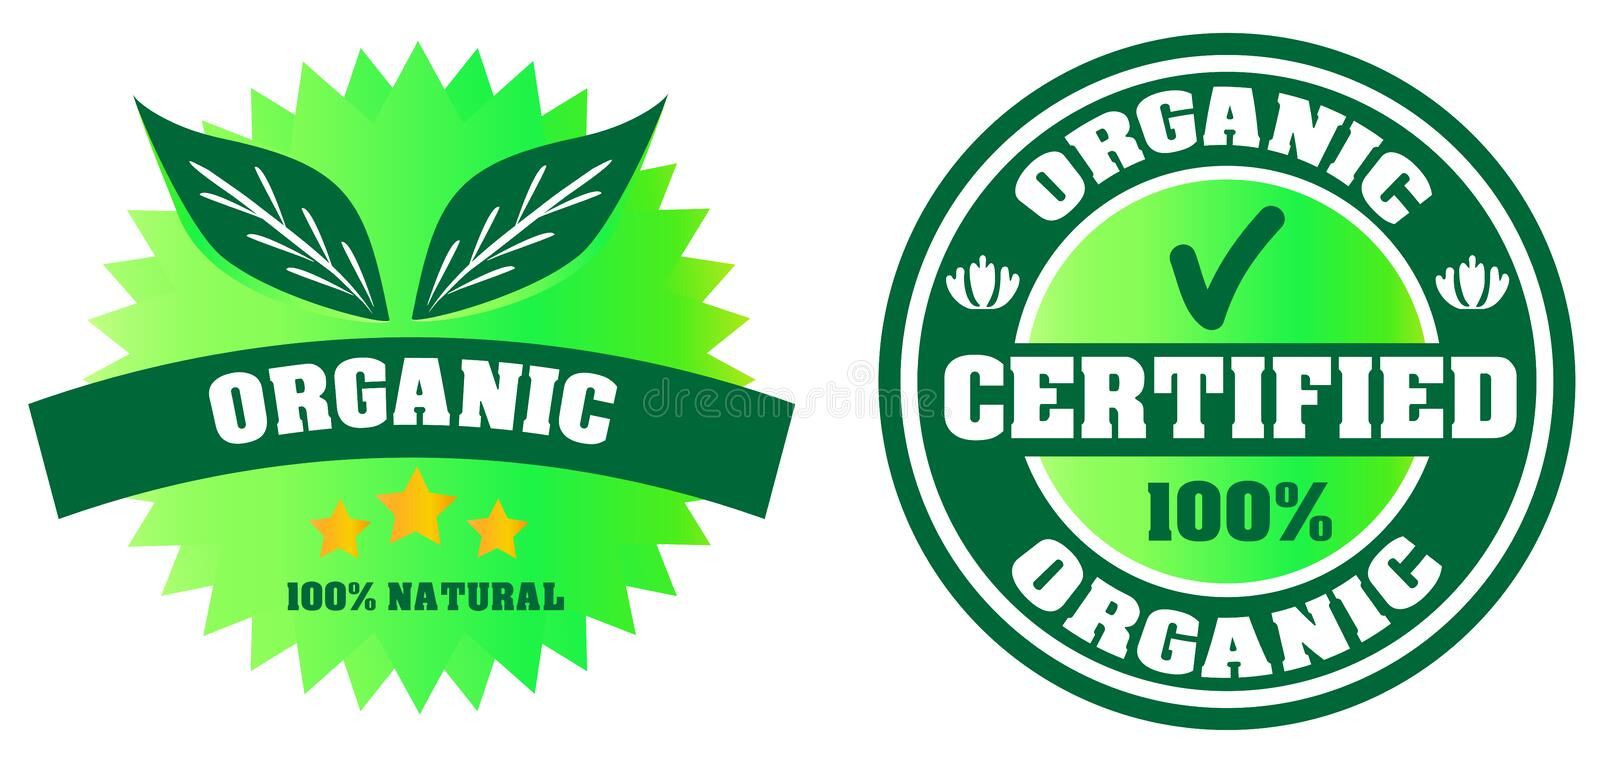 Are Green Label Products Natural